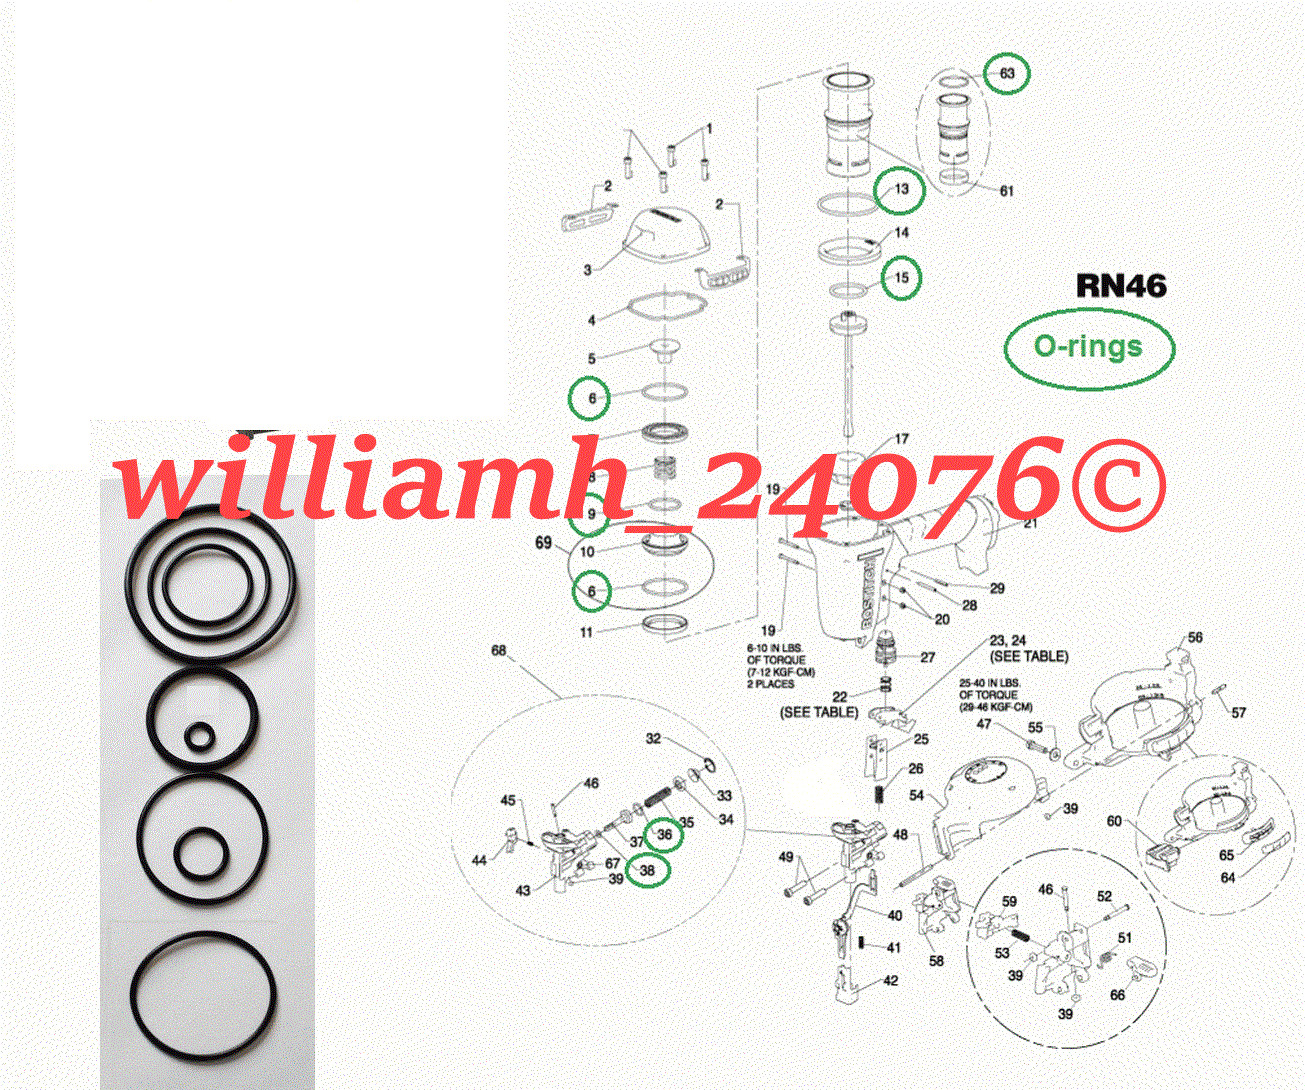 williamh_24076 O-ring Kit  For Bostitch Roofing Nailer RN46 RN46-1 Parts Repair